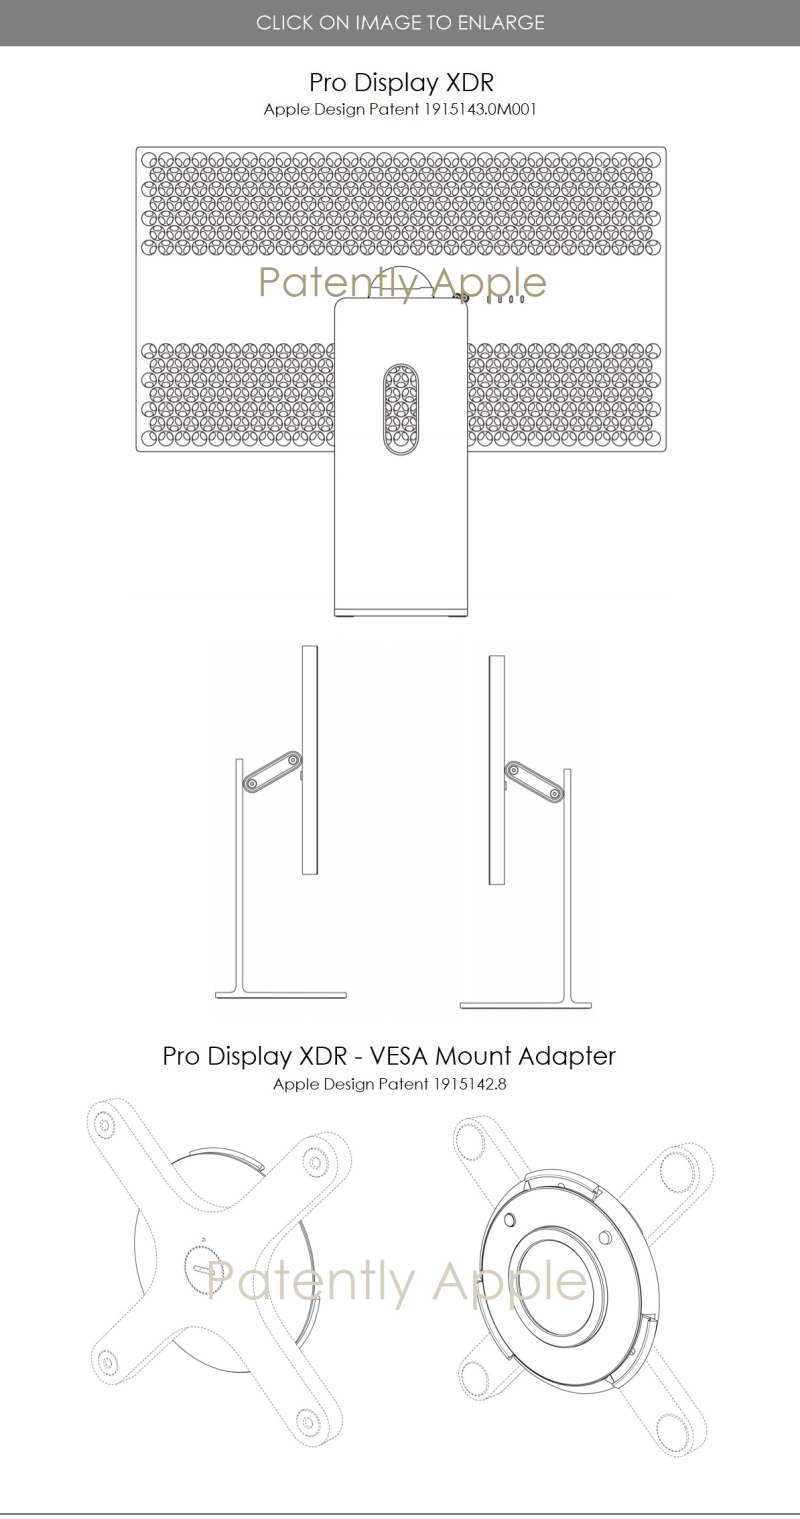 2 pro display XDR Apple design patent 1915143.0M004